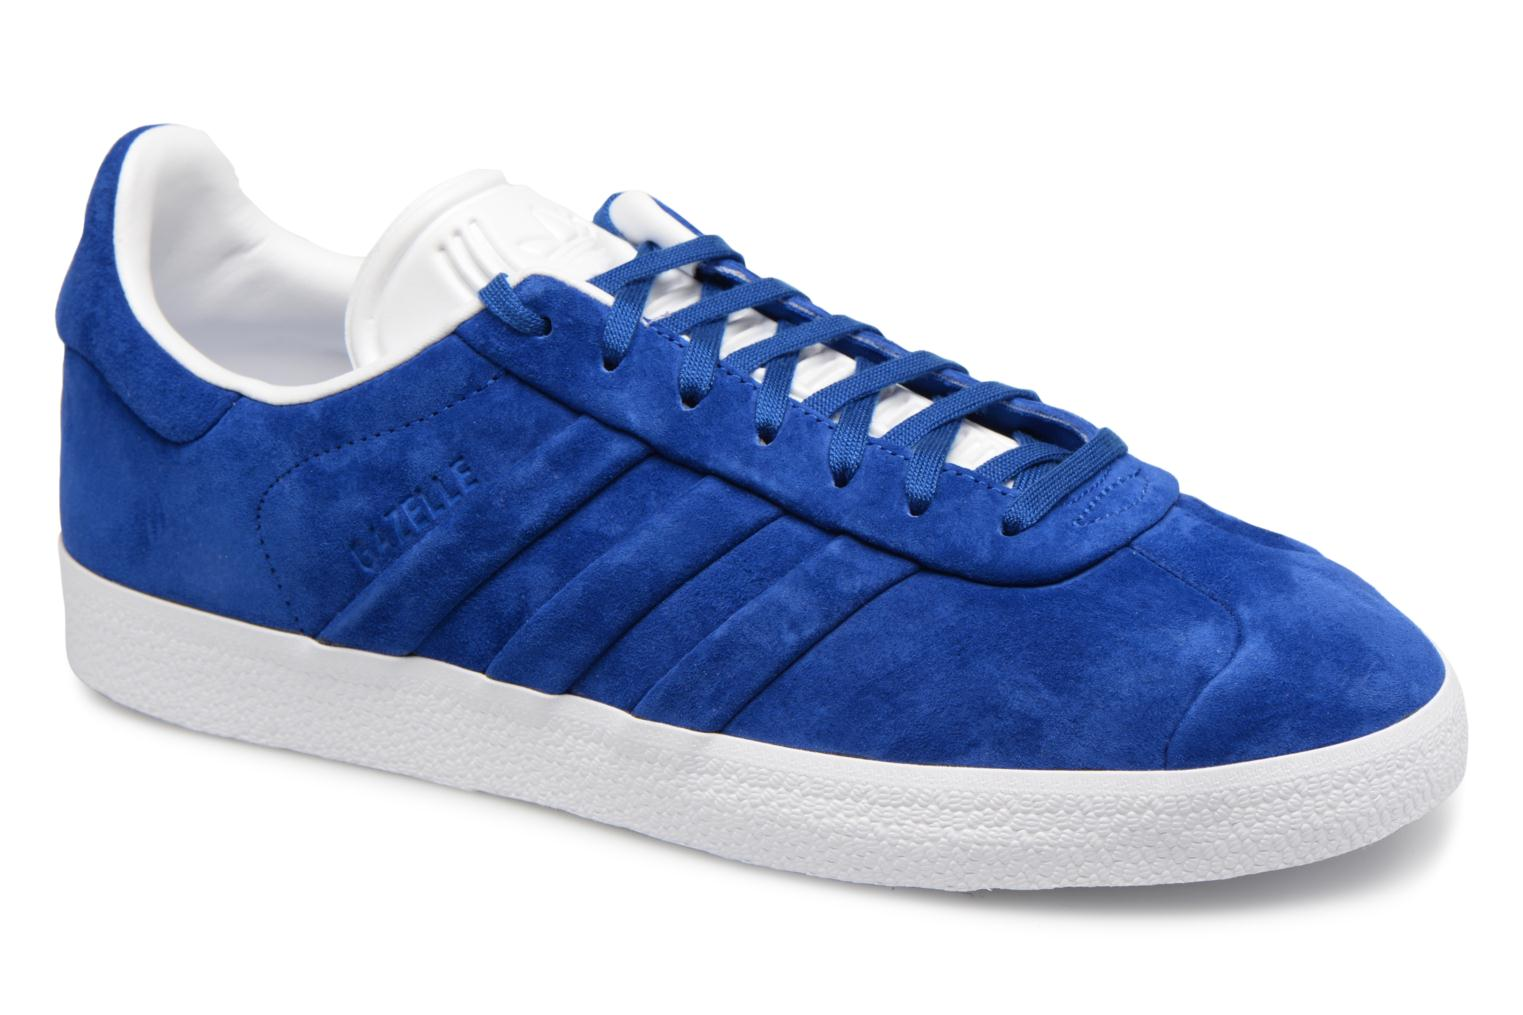 Originals Gazelle And Croyal ftwwht Stitch croyal Turn Adidas XOZiPku